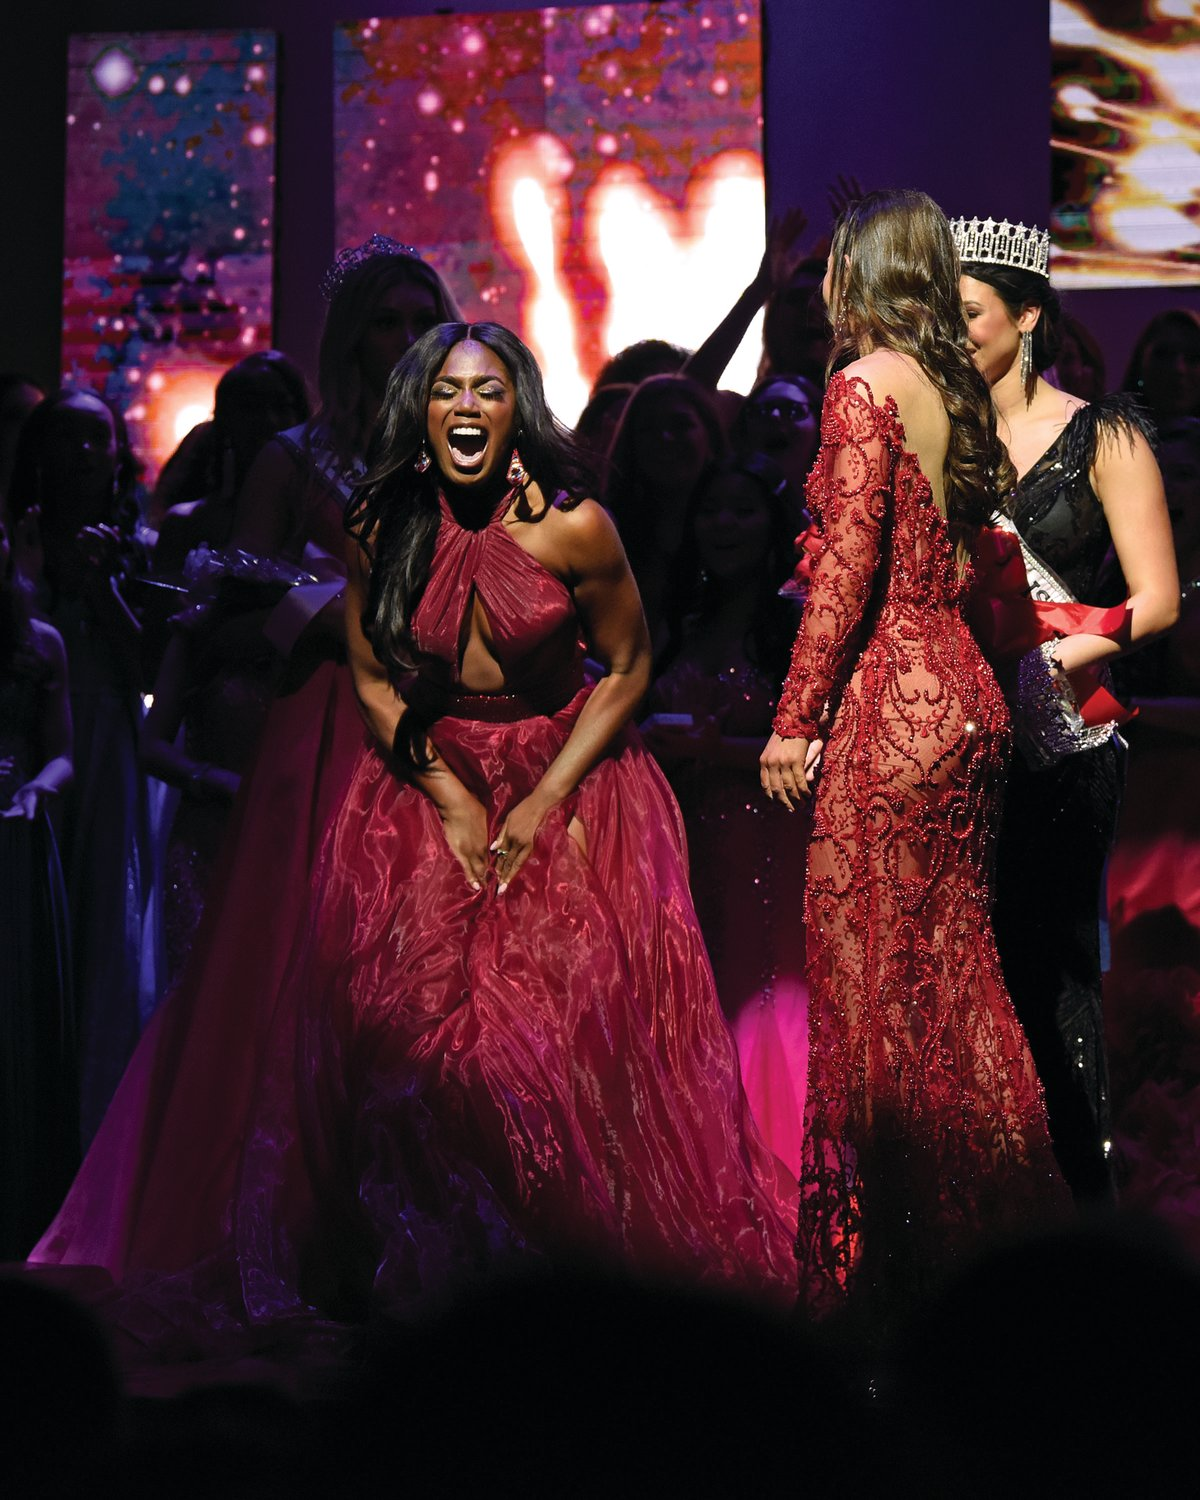 MOMENT OF A LIFETIME: Jonét Nichelle of North Providence let out an excited scream when she was crowned Miss Rhode Island USA.